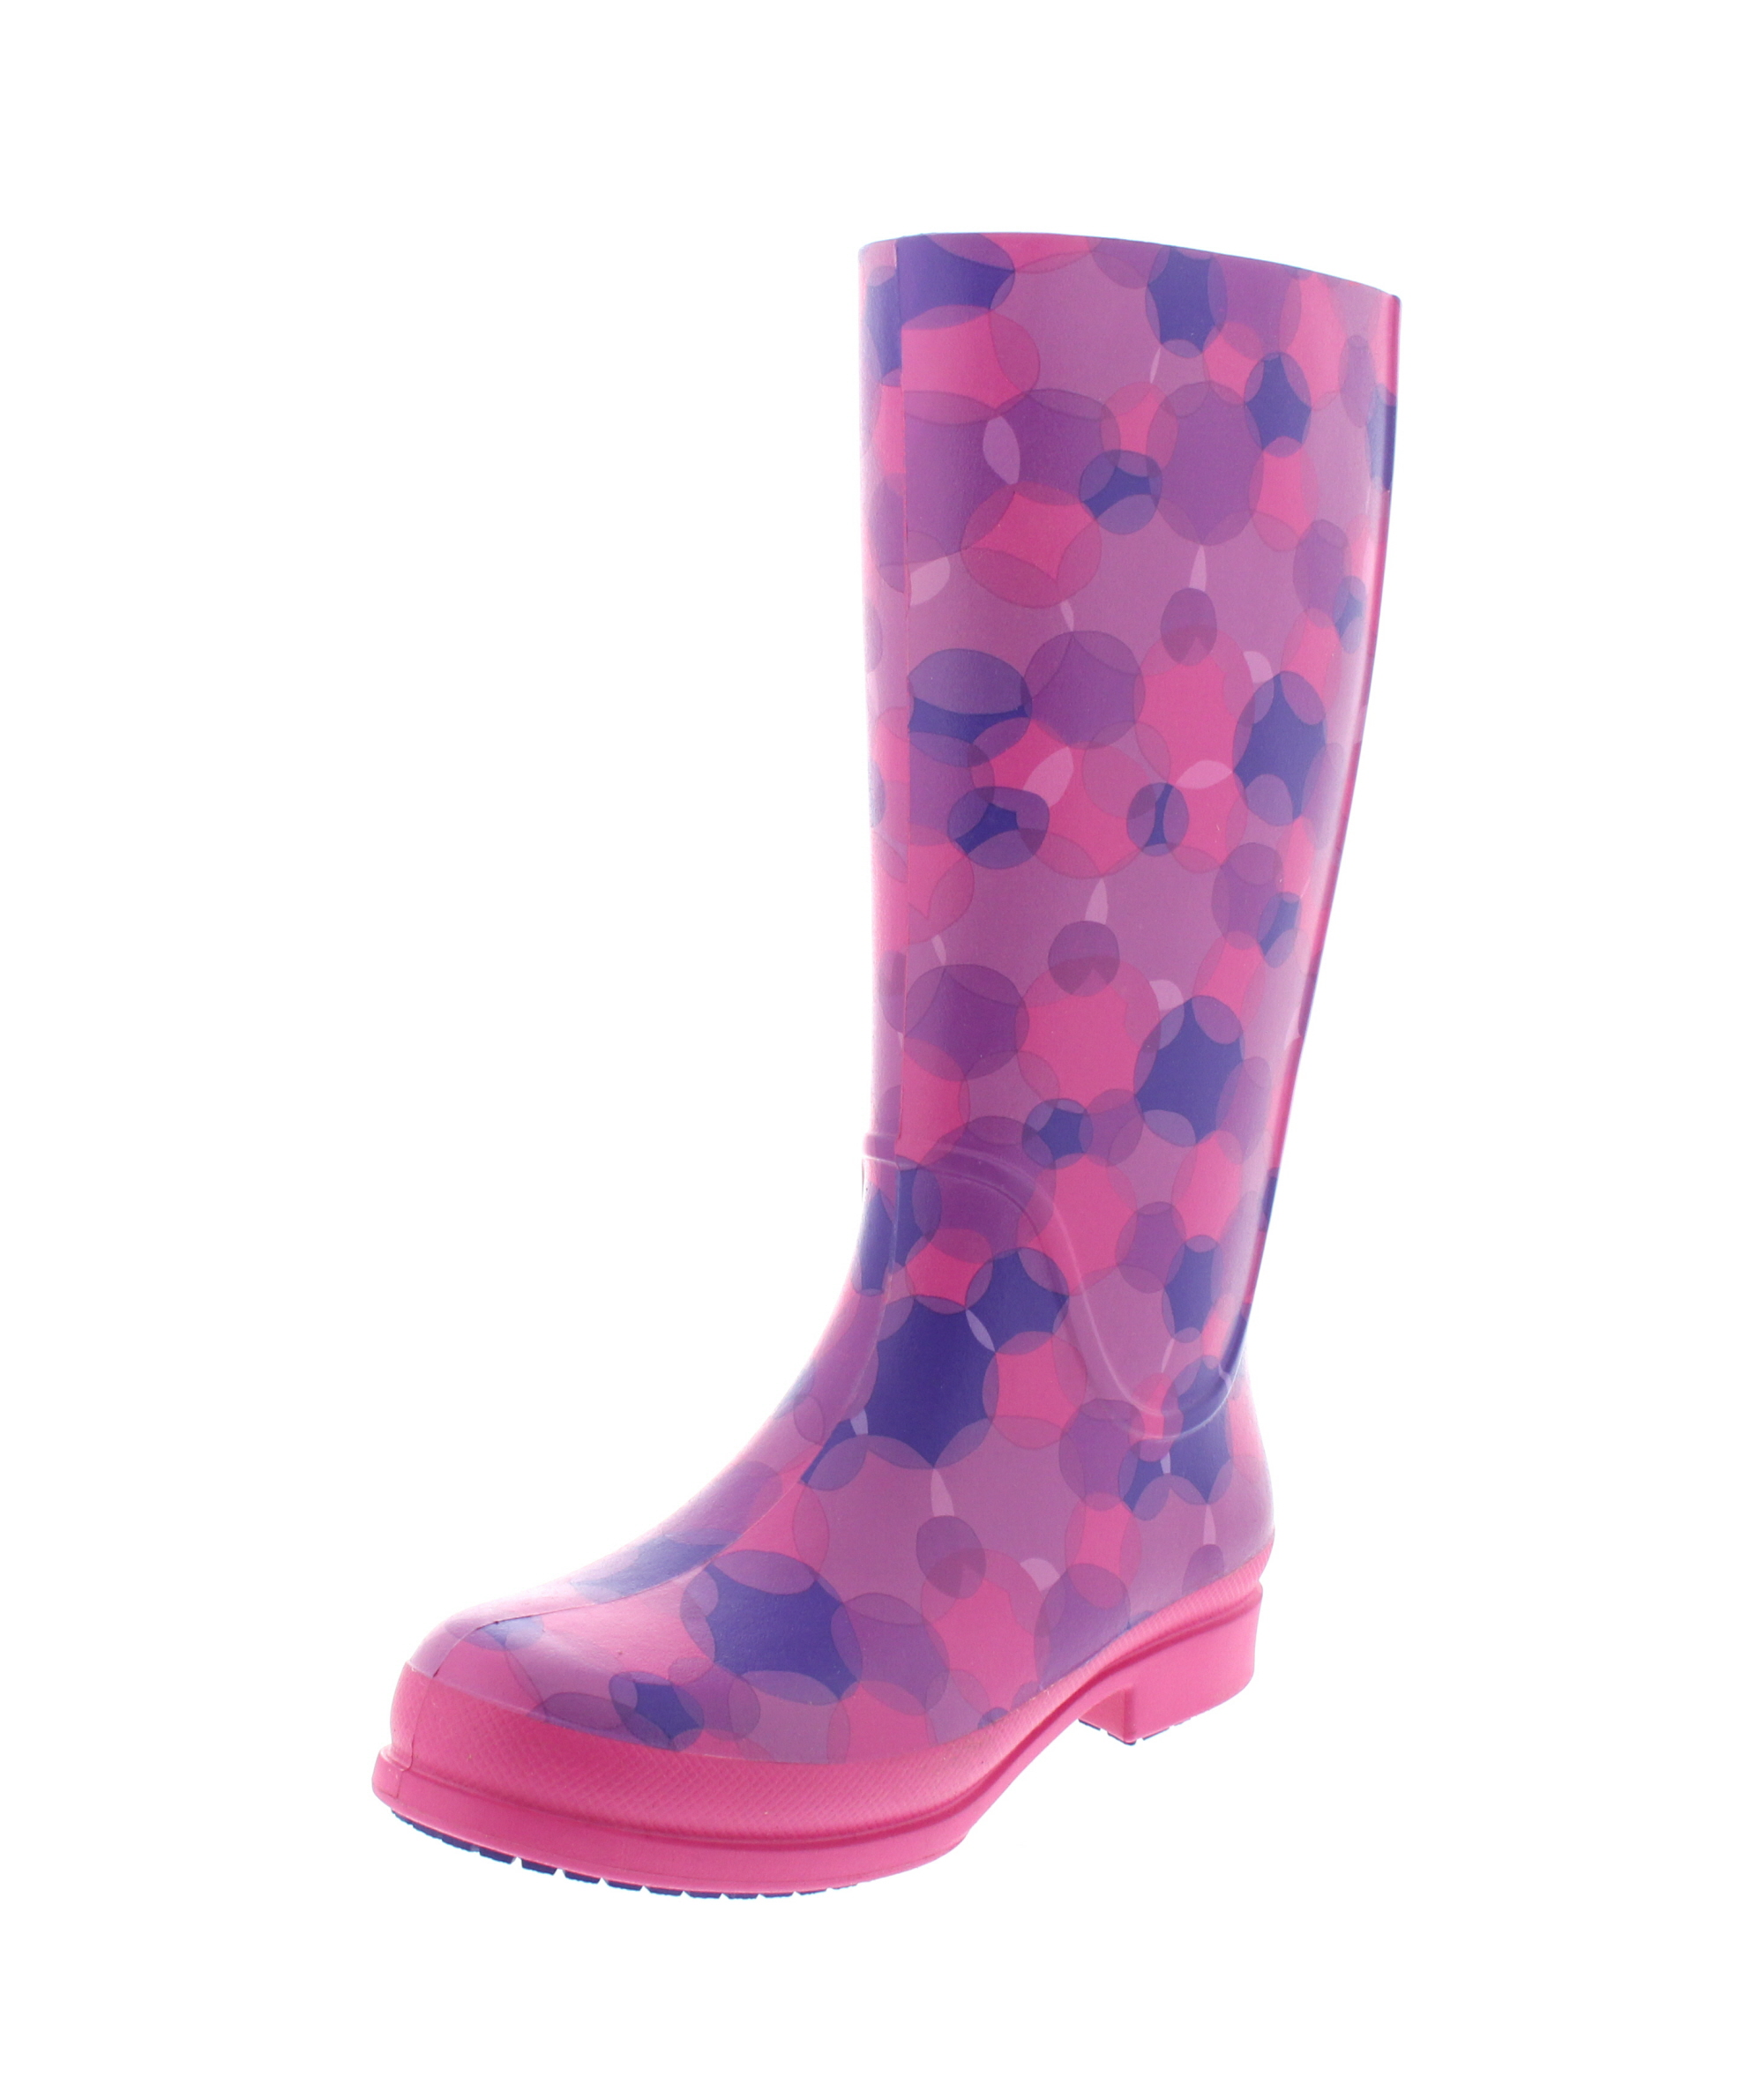 CROCS - Gummistiefel WELLIE POLKA DOT BOOT - fuchsia_0